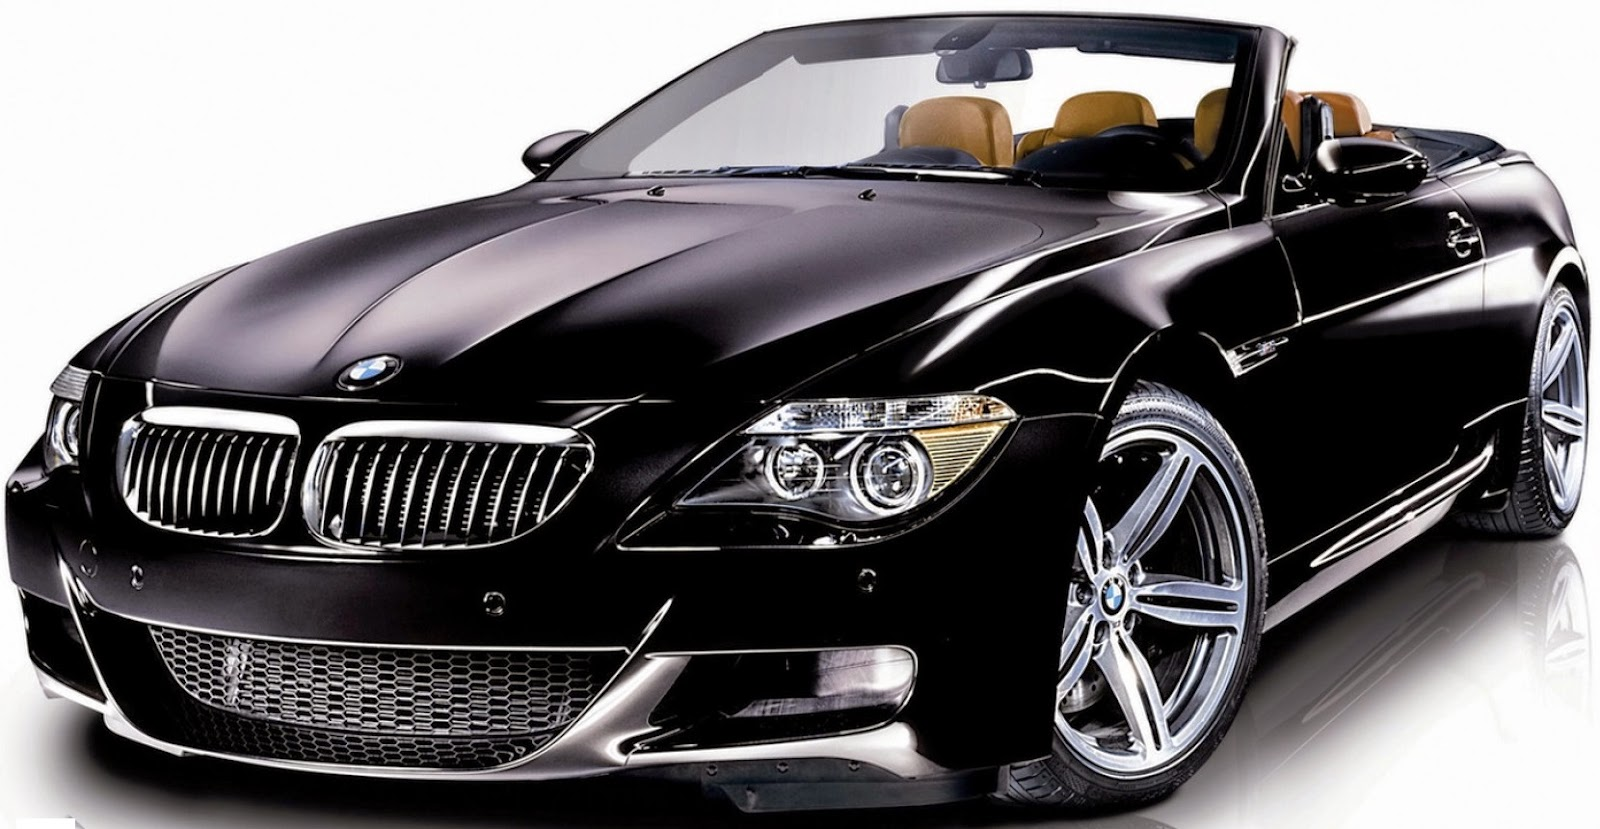 Germany Cars: Study In Germany: Top 5 Things Famous About Germany